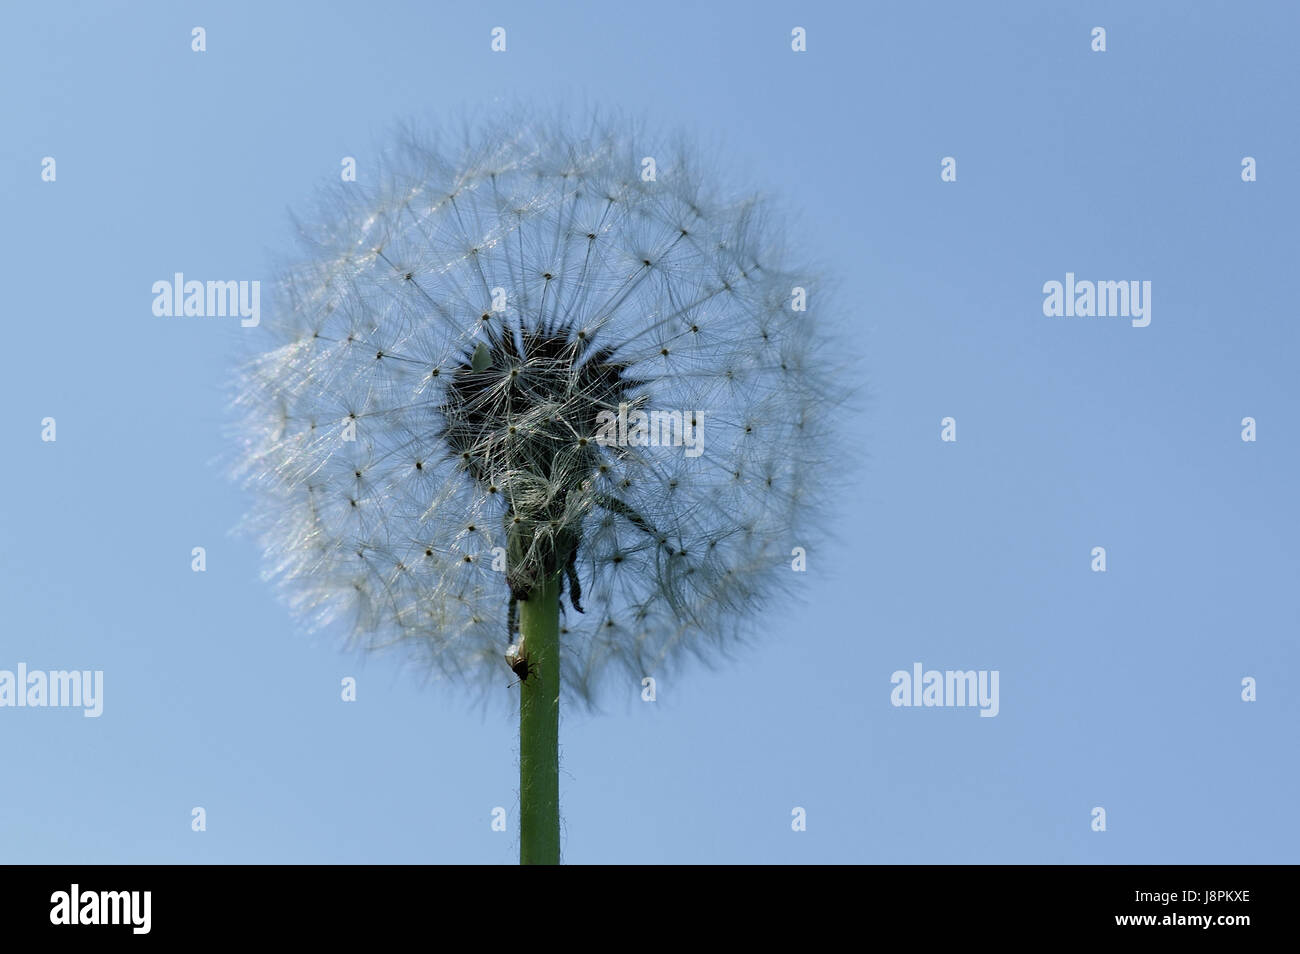 Bild Pusteblume Pusteblume With Fly Stock Photo 143098774 Alamy